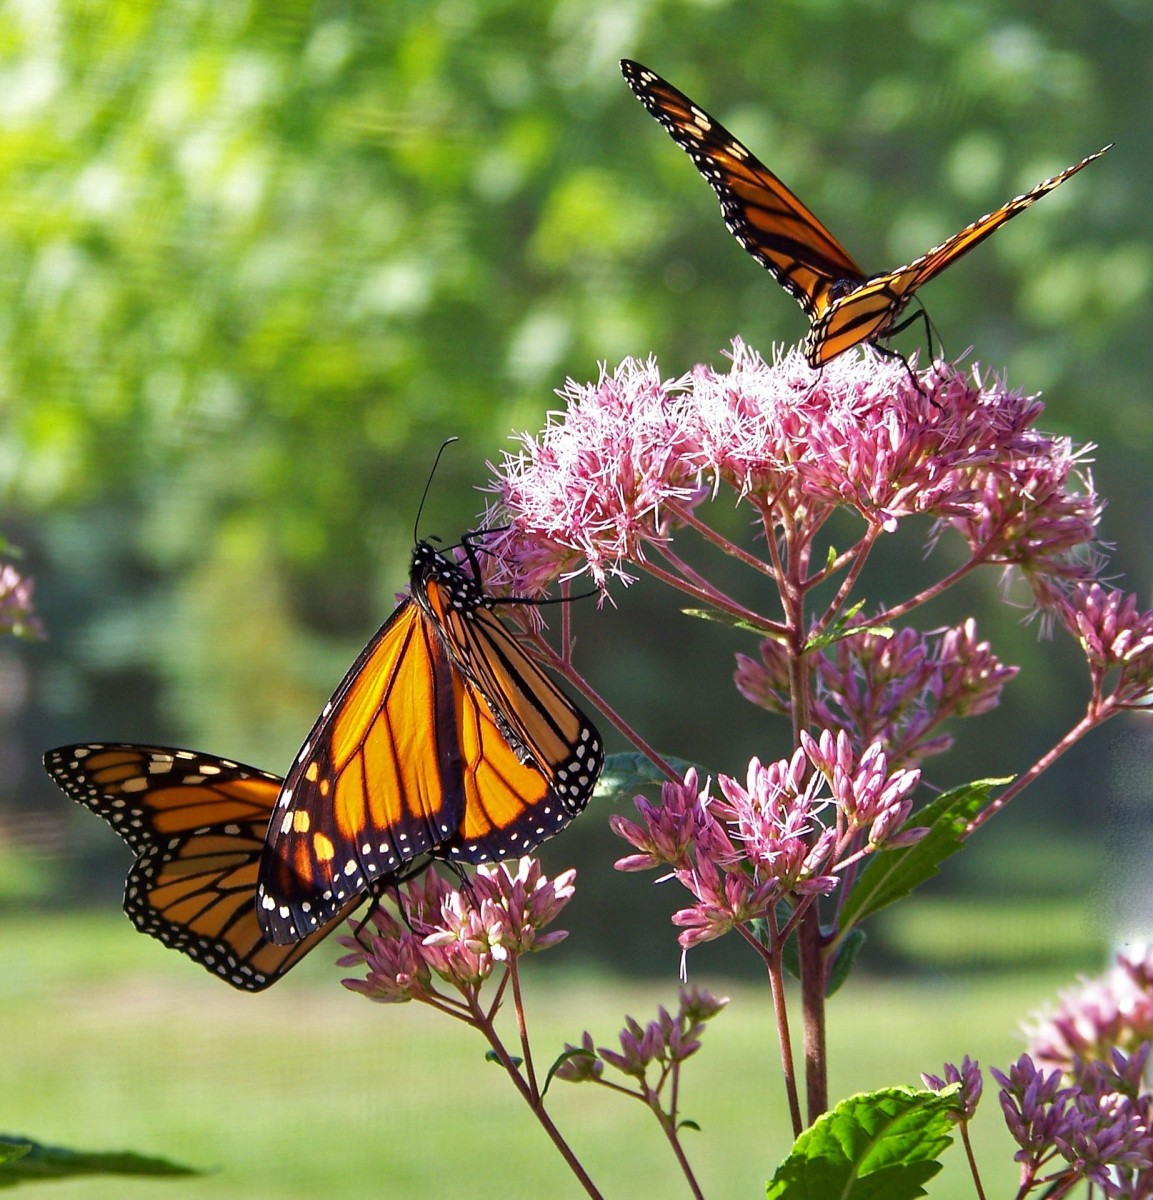 Multiple butterflies visiting the same bloom.